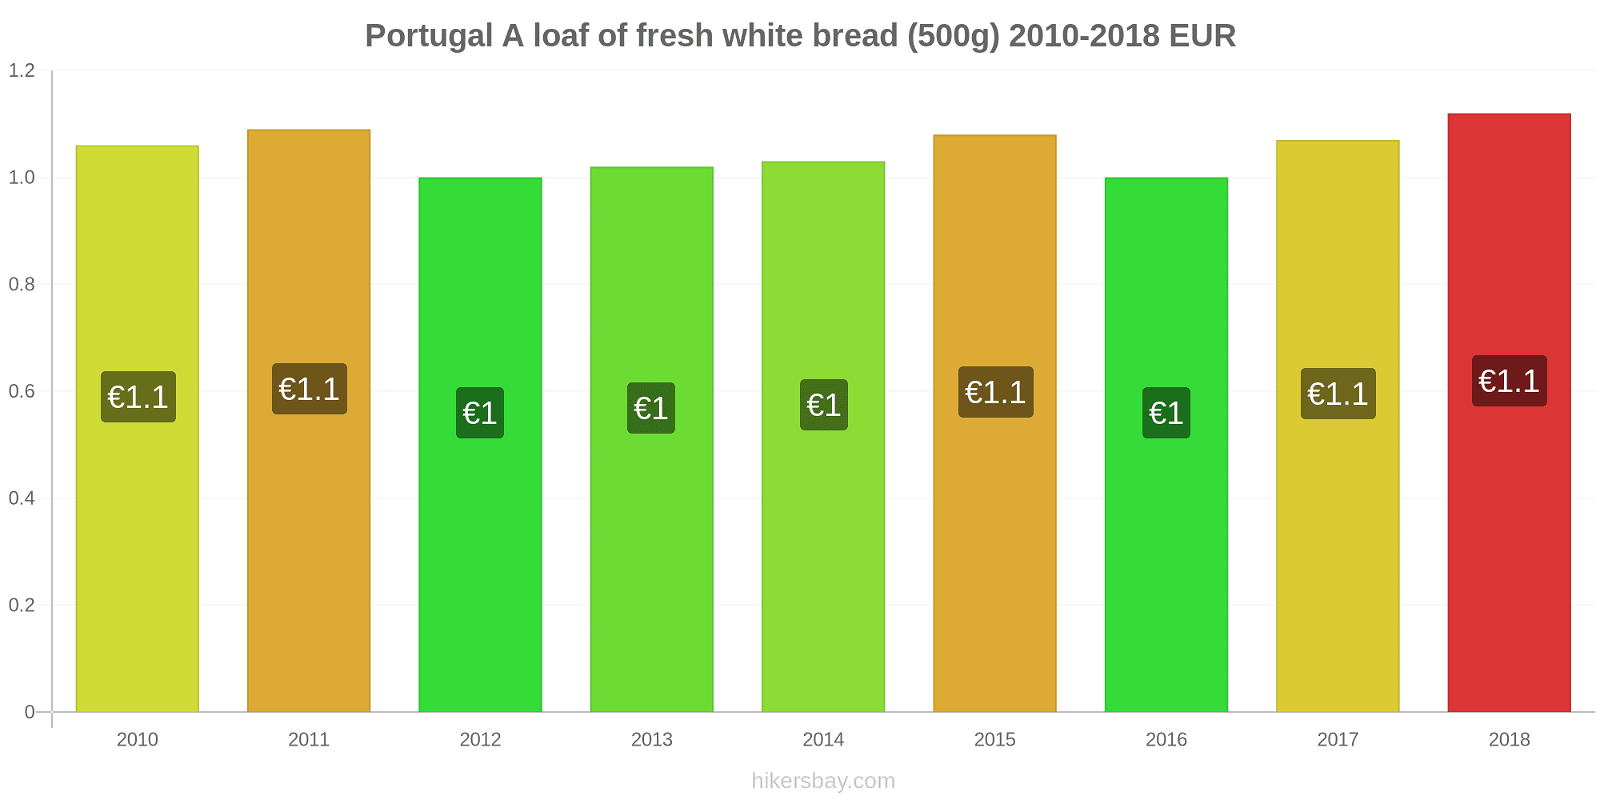 Portugal price changes A loaf of fresh white bread (500g) hikersbay.com